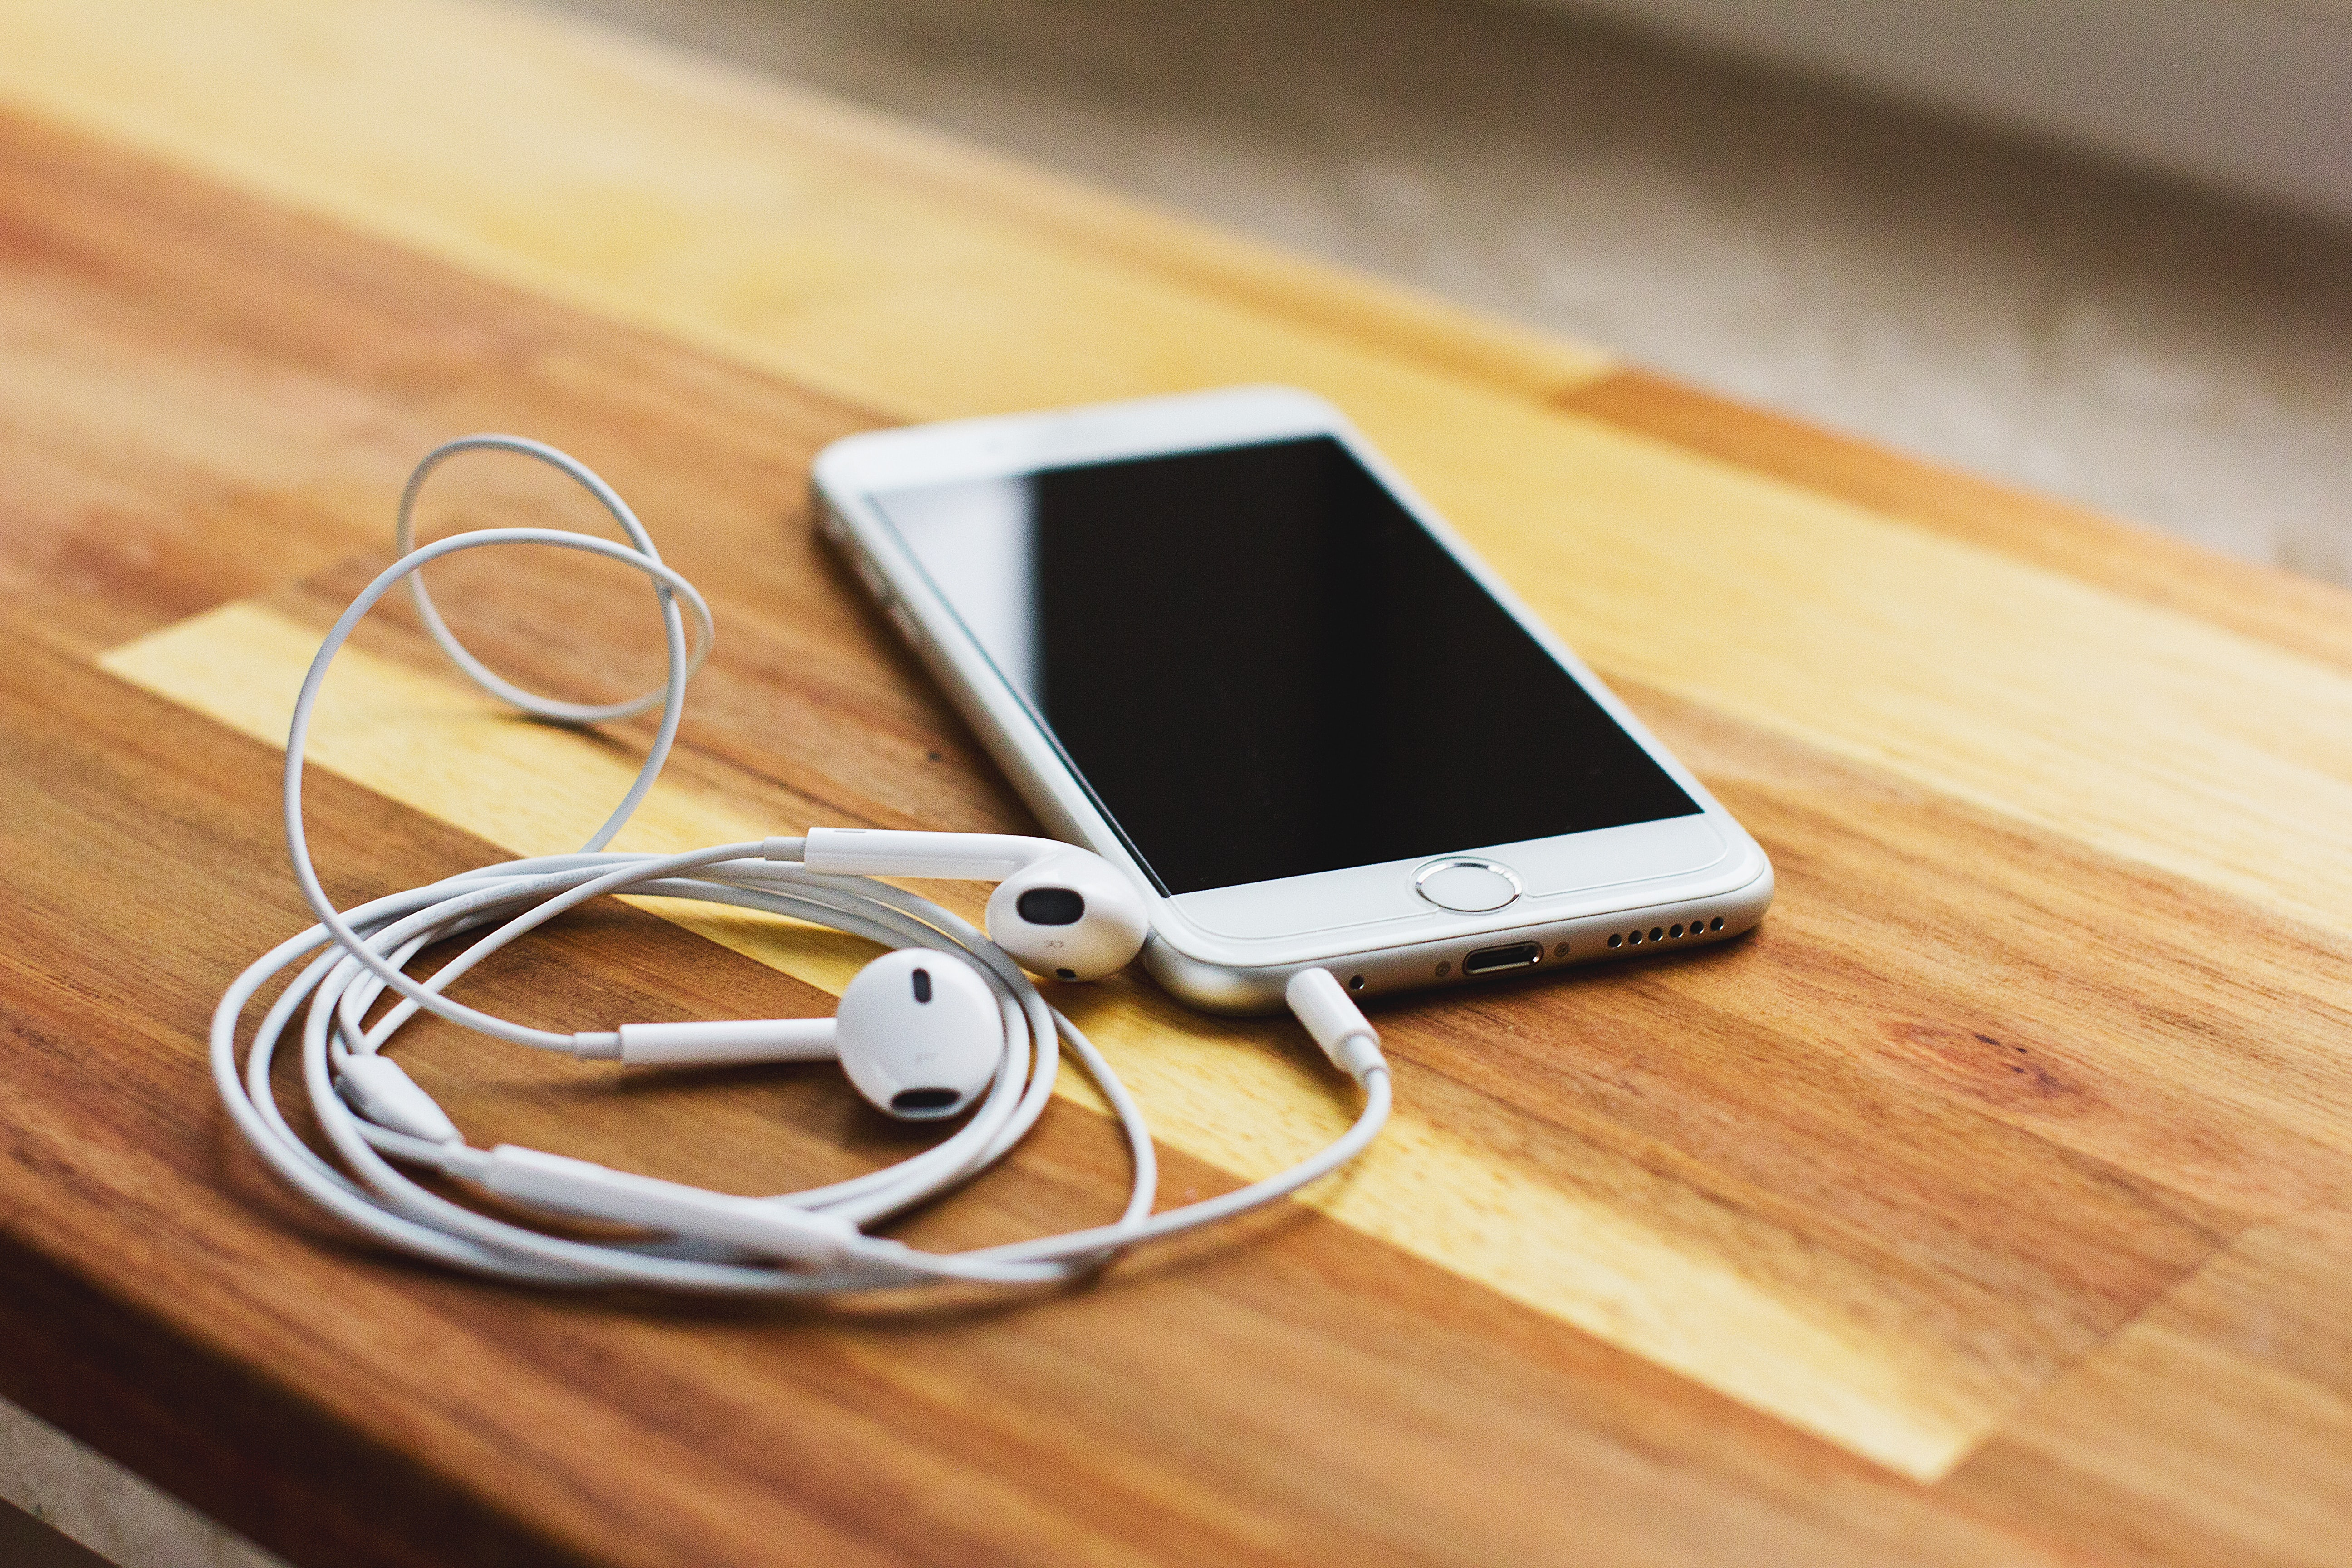 silver iPhone 6 with EarPods on brown wooden table